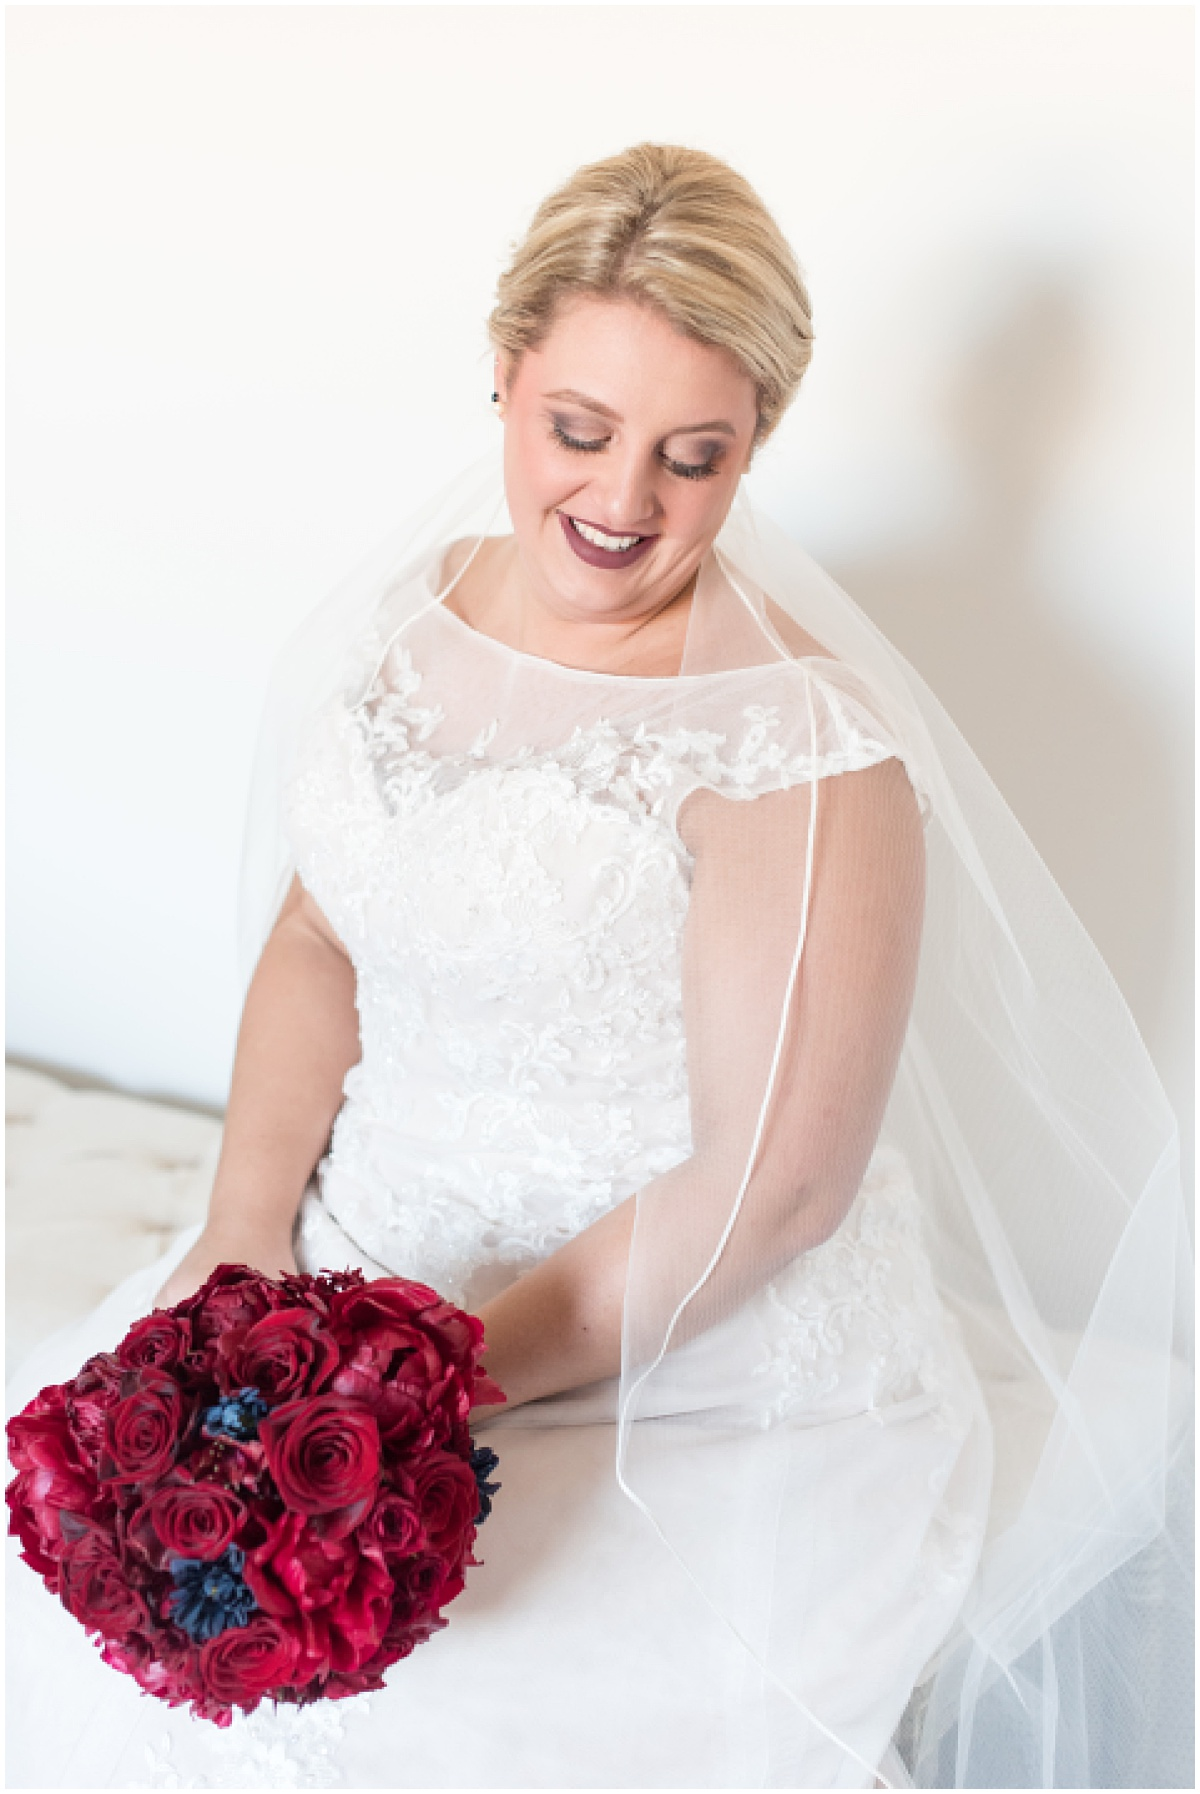 Bride getting ready for wedding at Sacred Heart Catholic Church in Fowler, Indiana